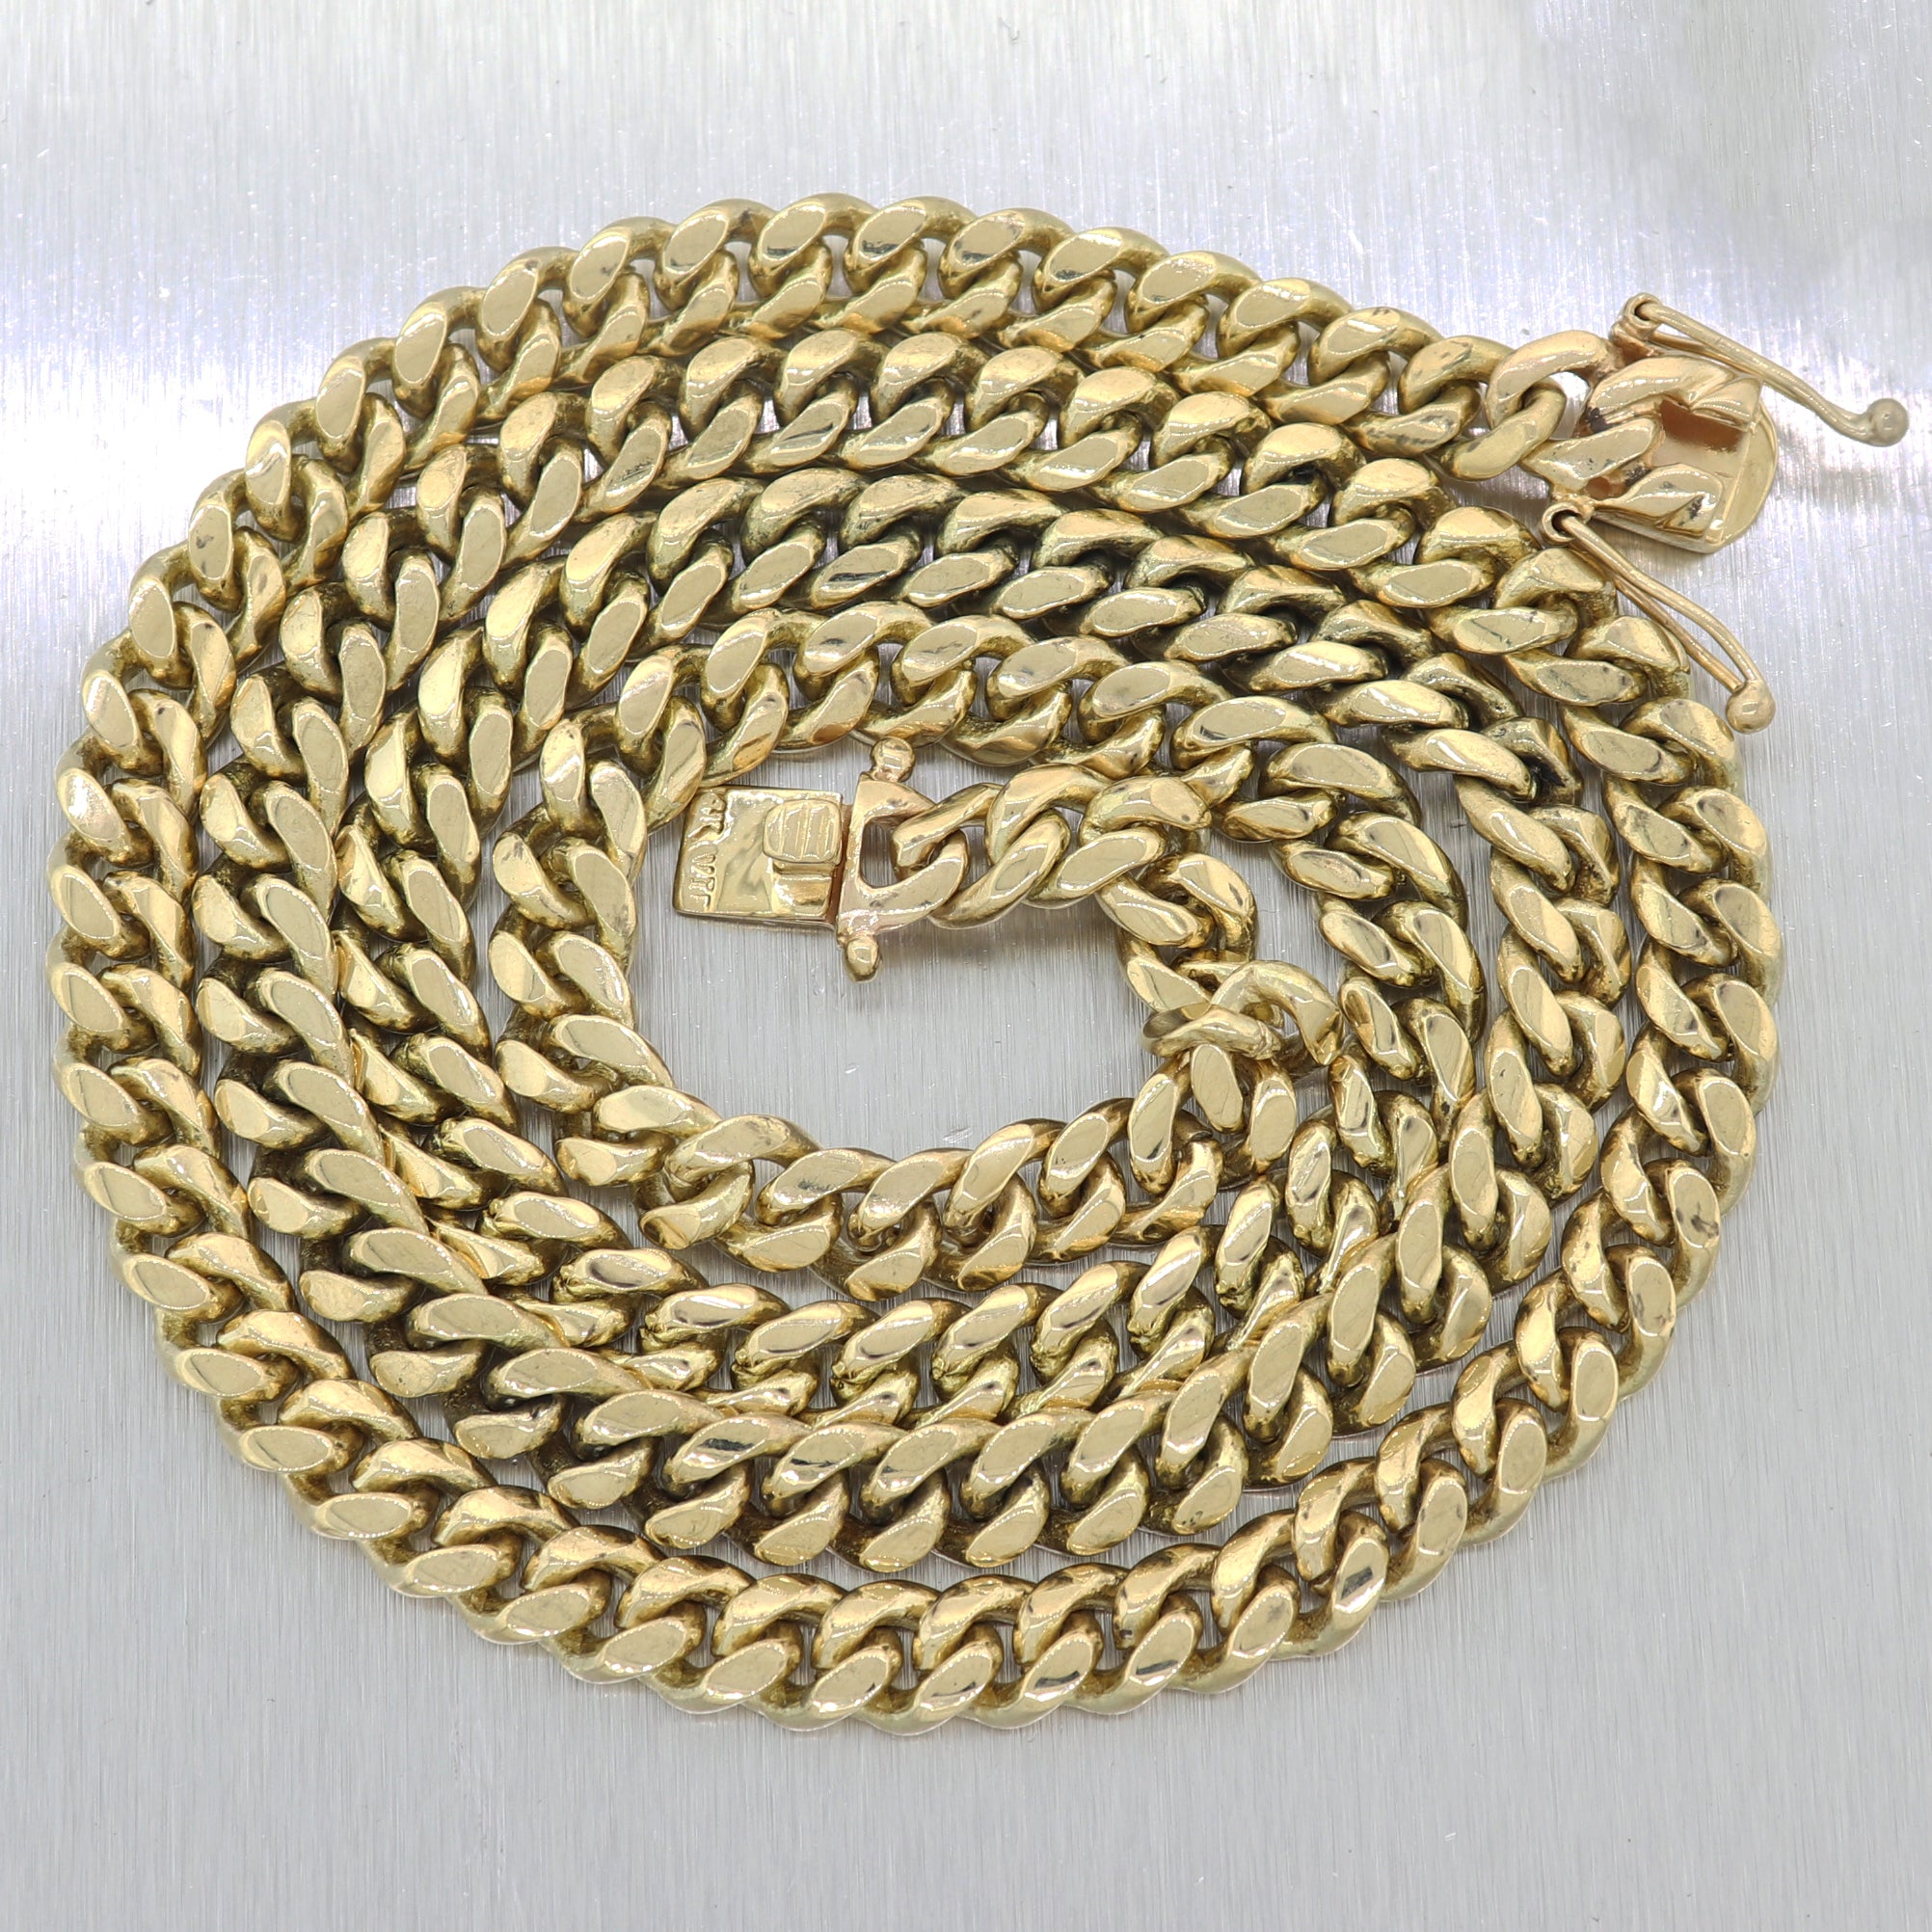 "Mens Chain 161g Heavy 14k Yellow Gold Cuban Link 30"" Long Necklace"